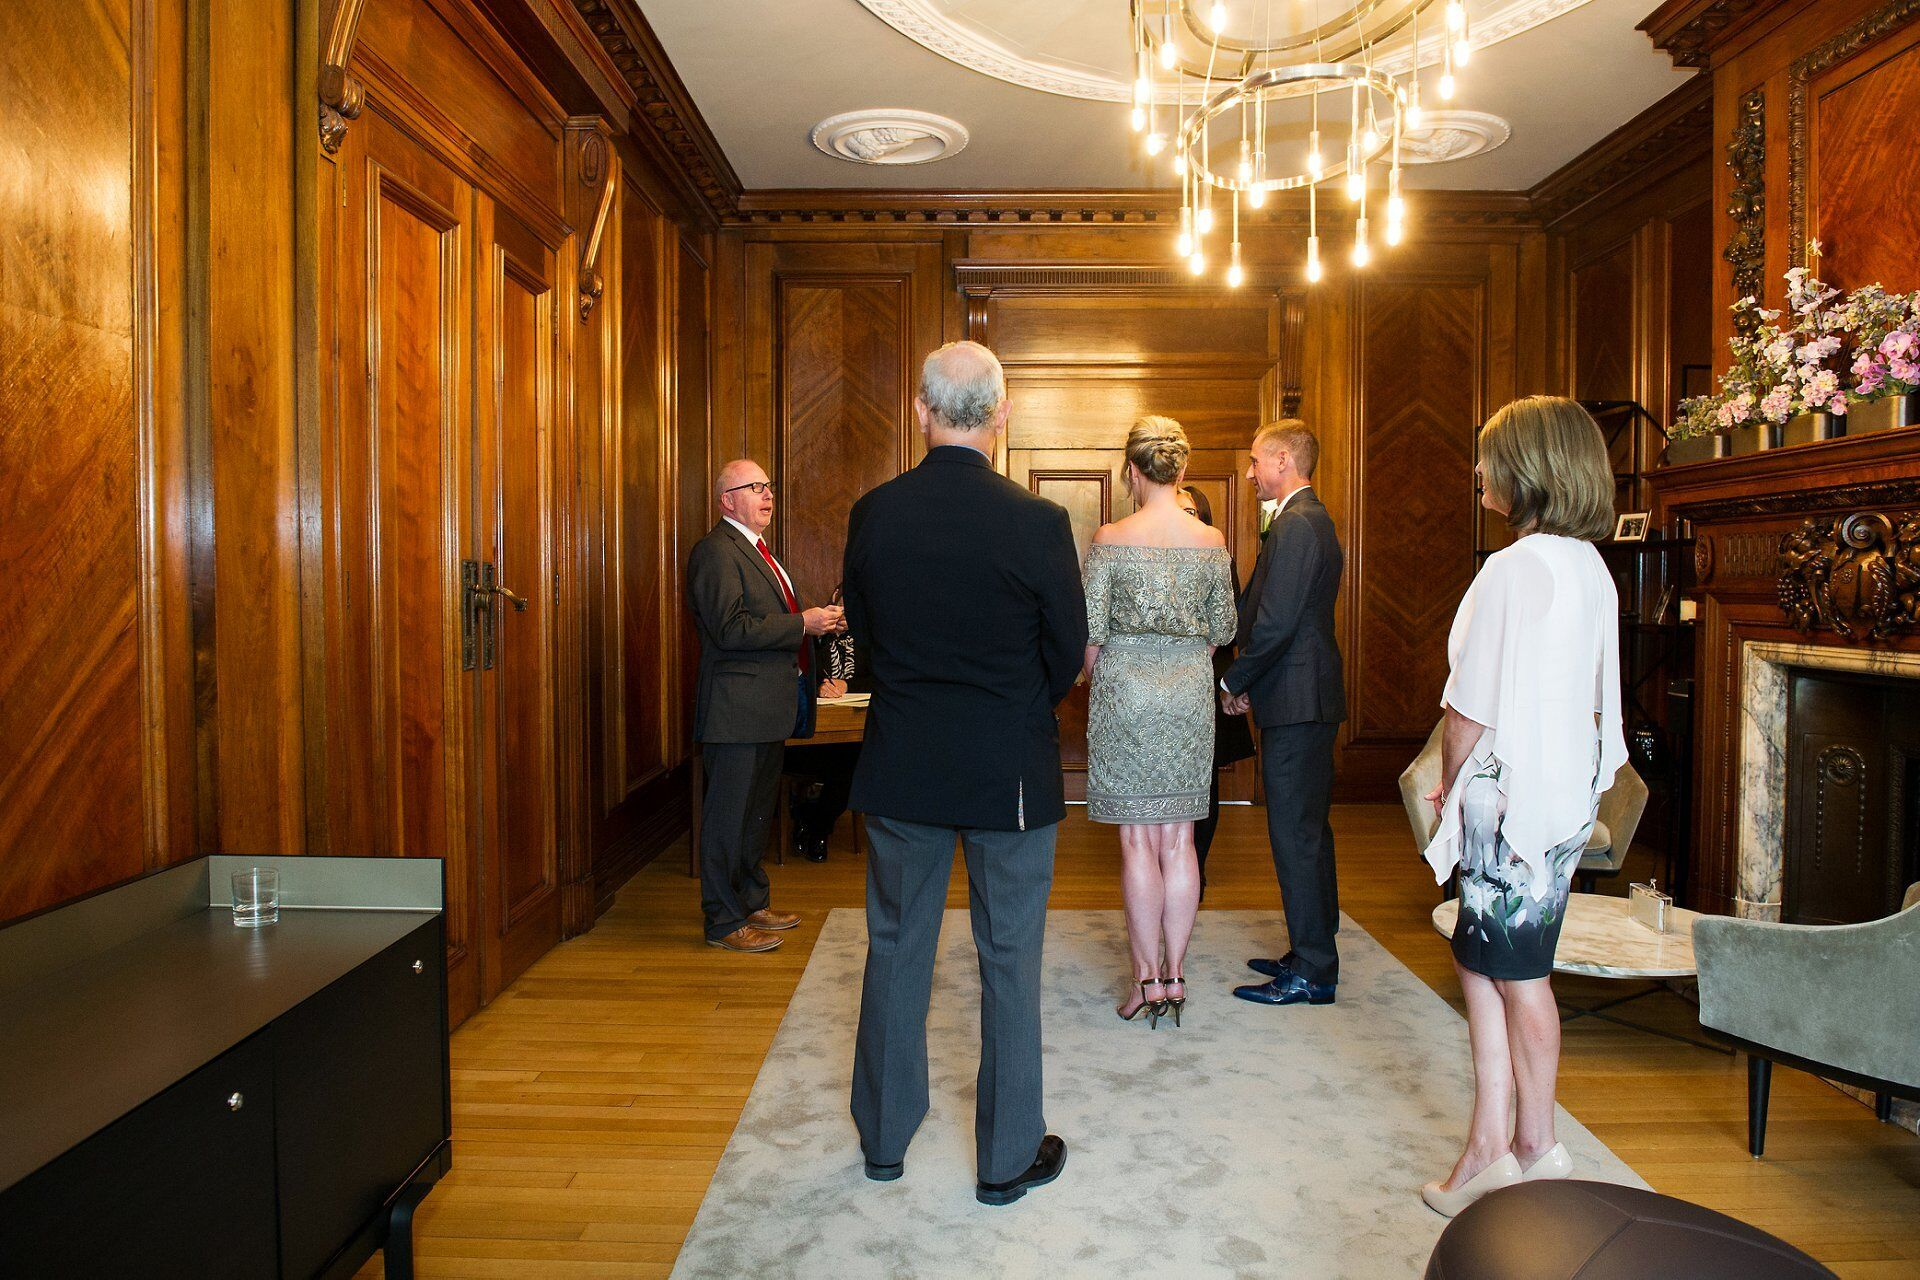 the paddington room at old marylebone town hall is westminster's most relaxed and intimate ceremony room and perfect for social distancing